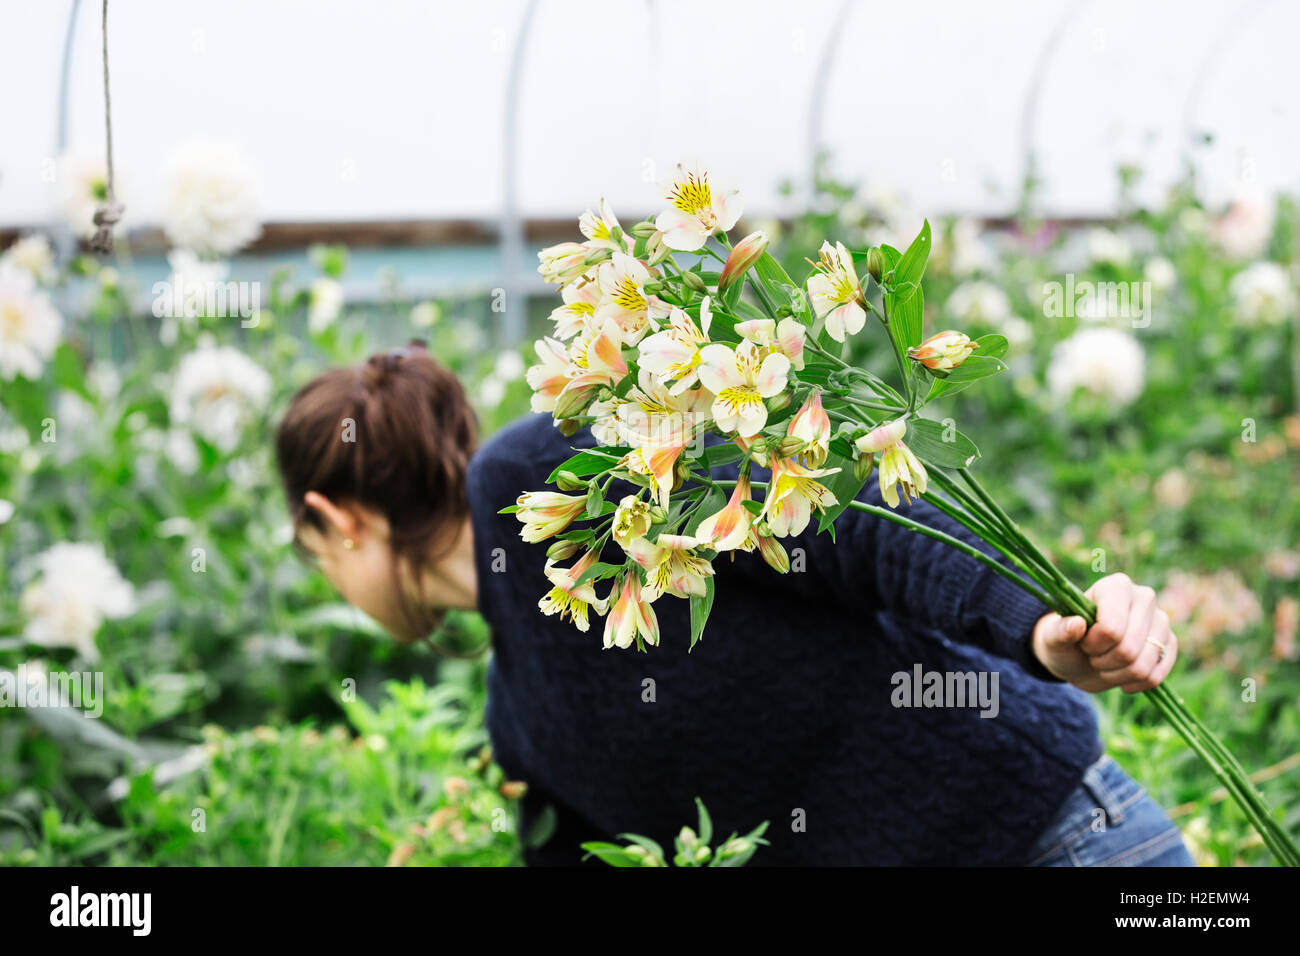 A woman picking cut flowers from the cuttings beds in a polytunnel. - Stock Image